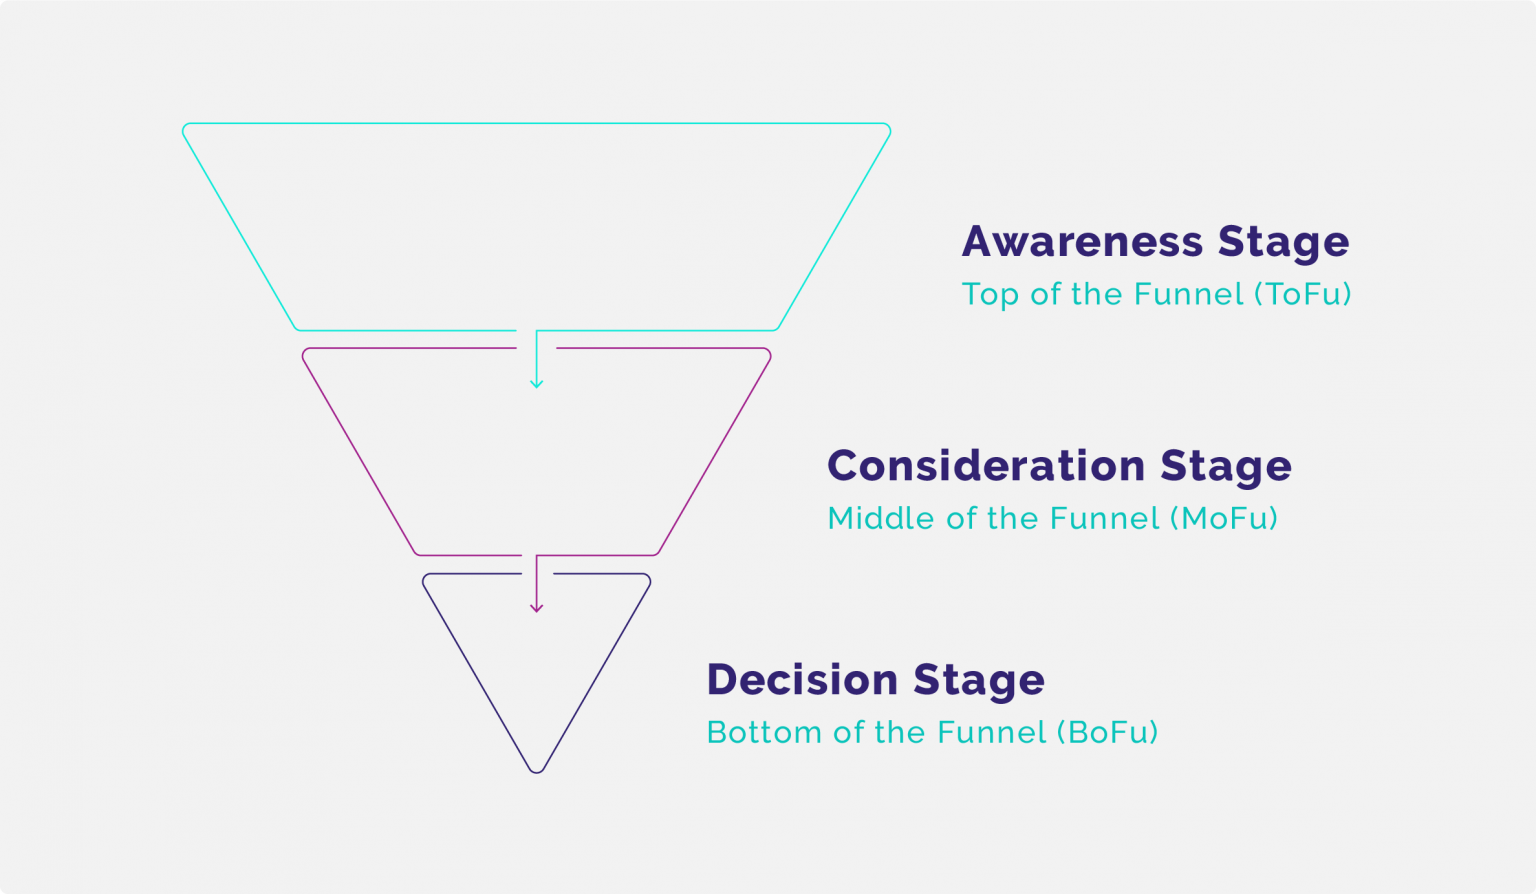 funnel-11-1536x894 copy.png